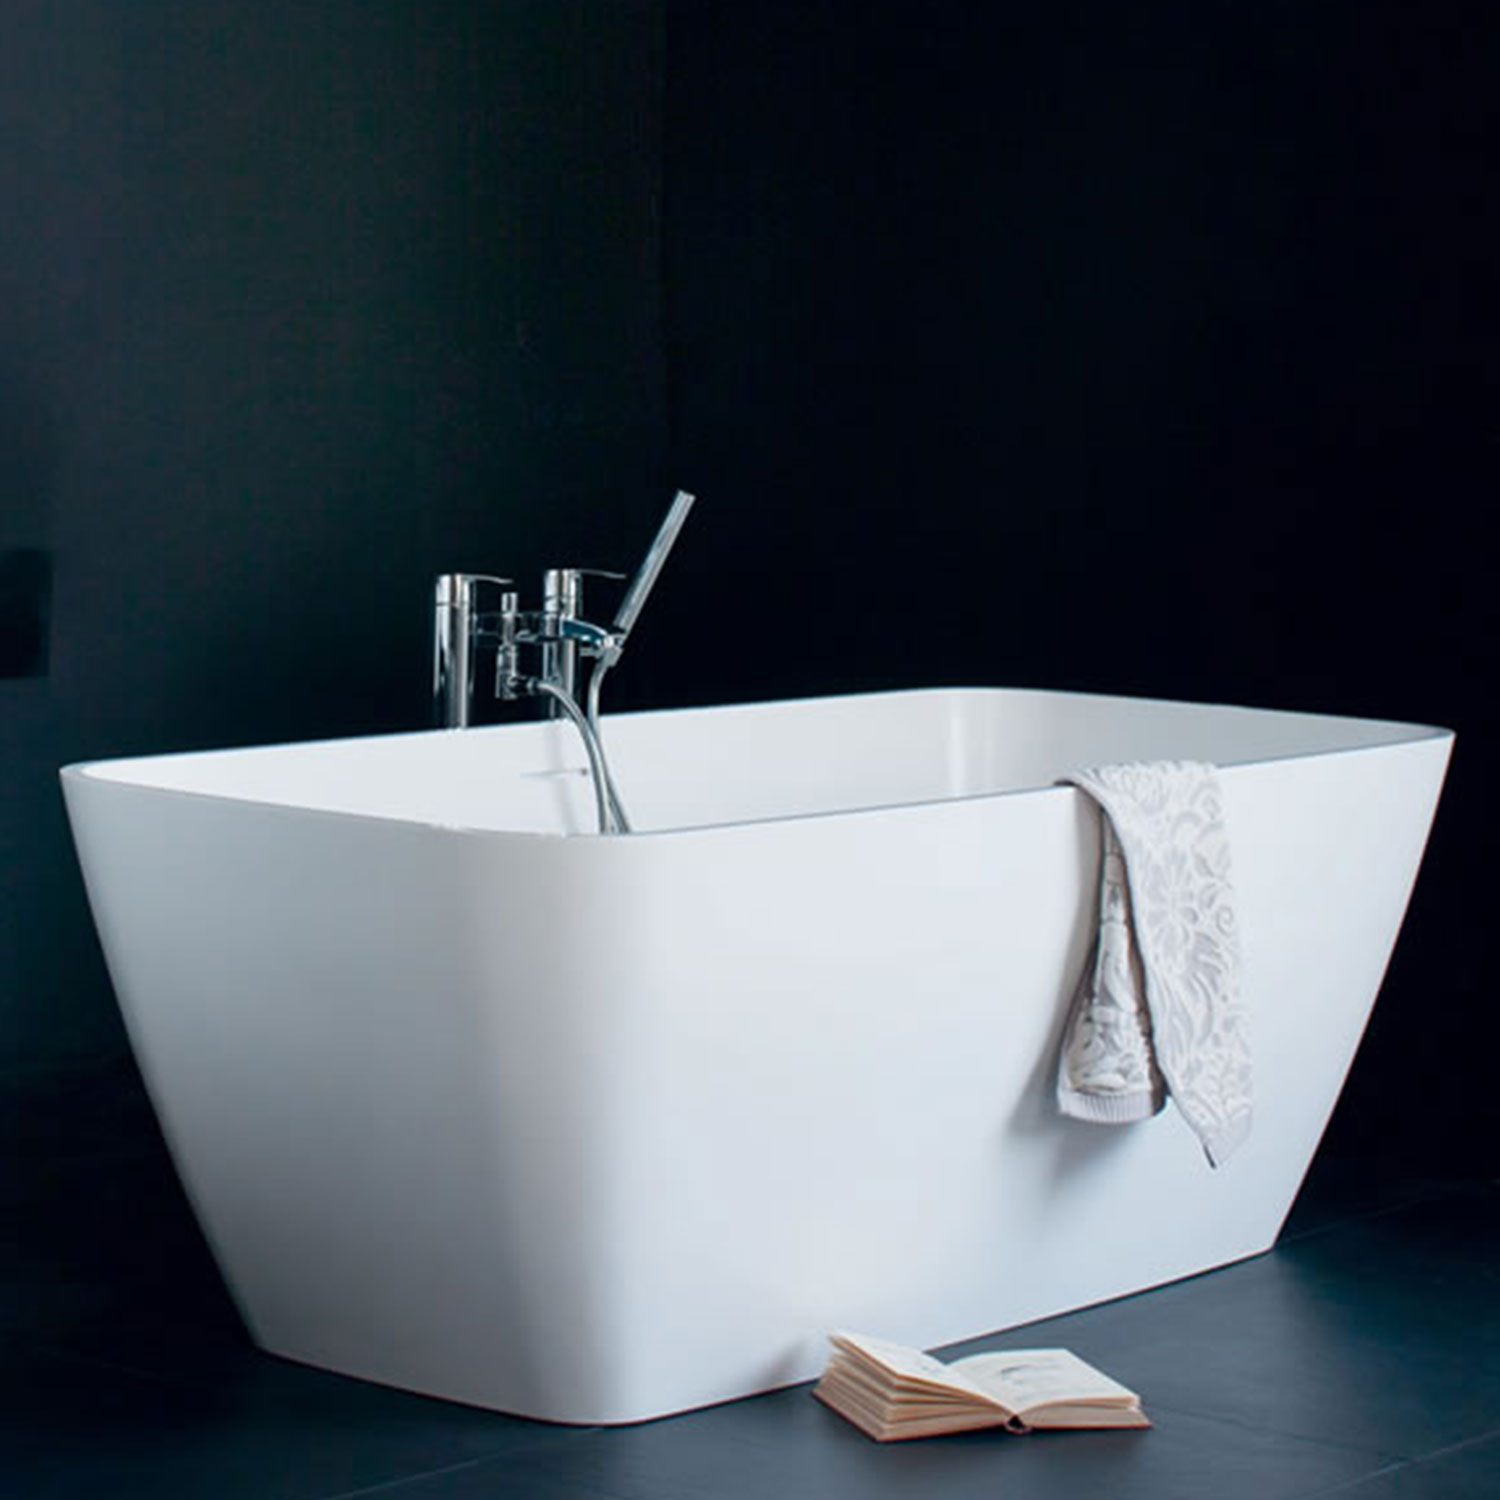 Clearwater Vicenza Piccolo Freestanding Bath 1600mm x 750mm - Natural Stone